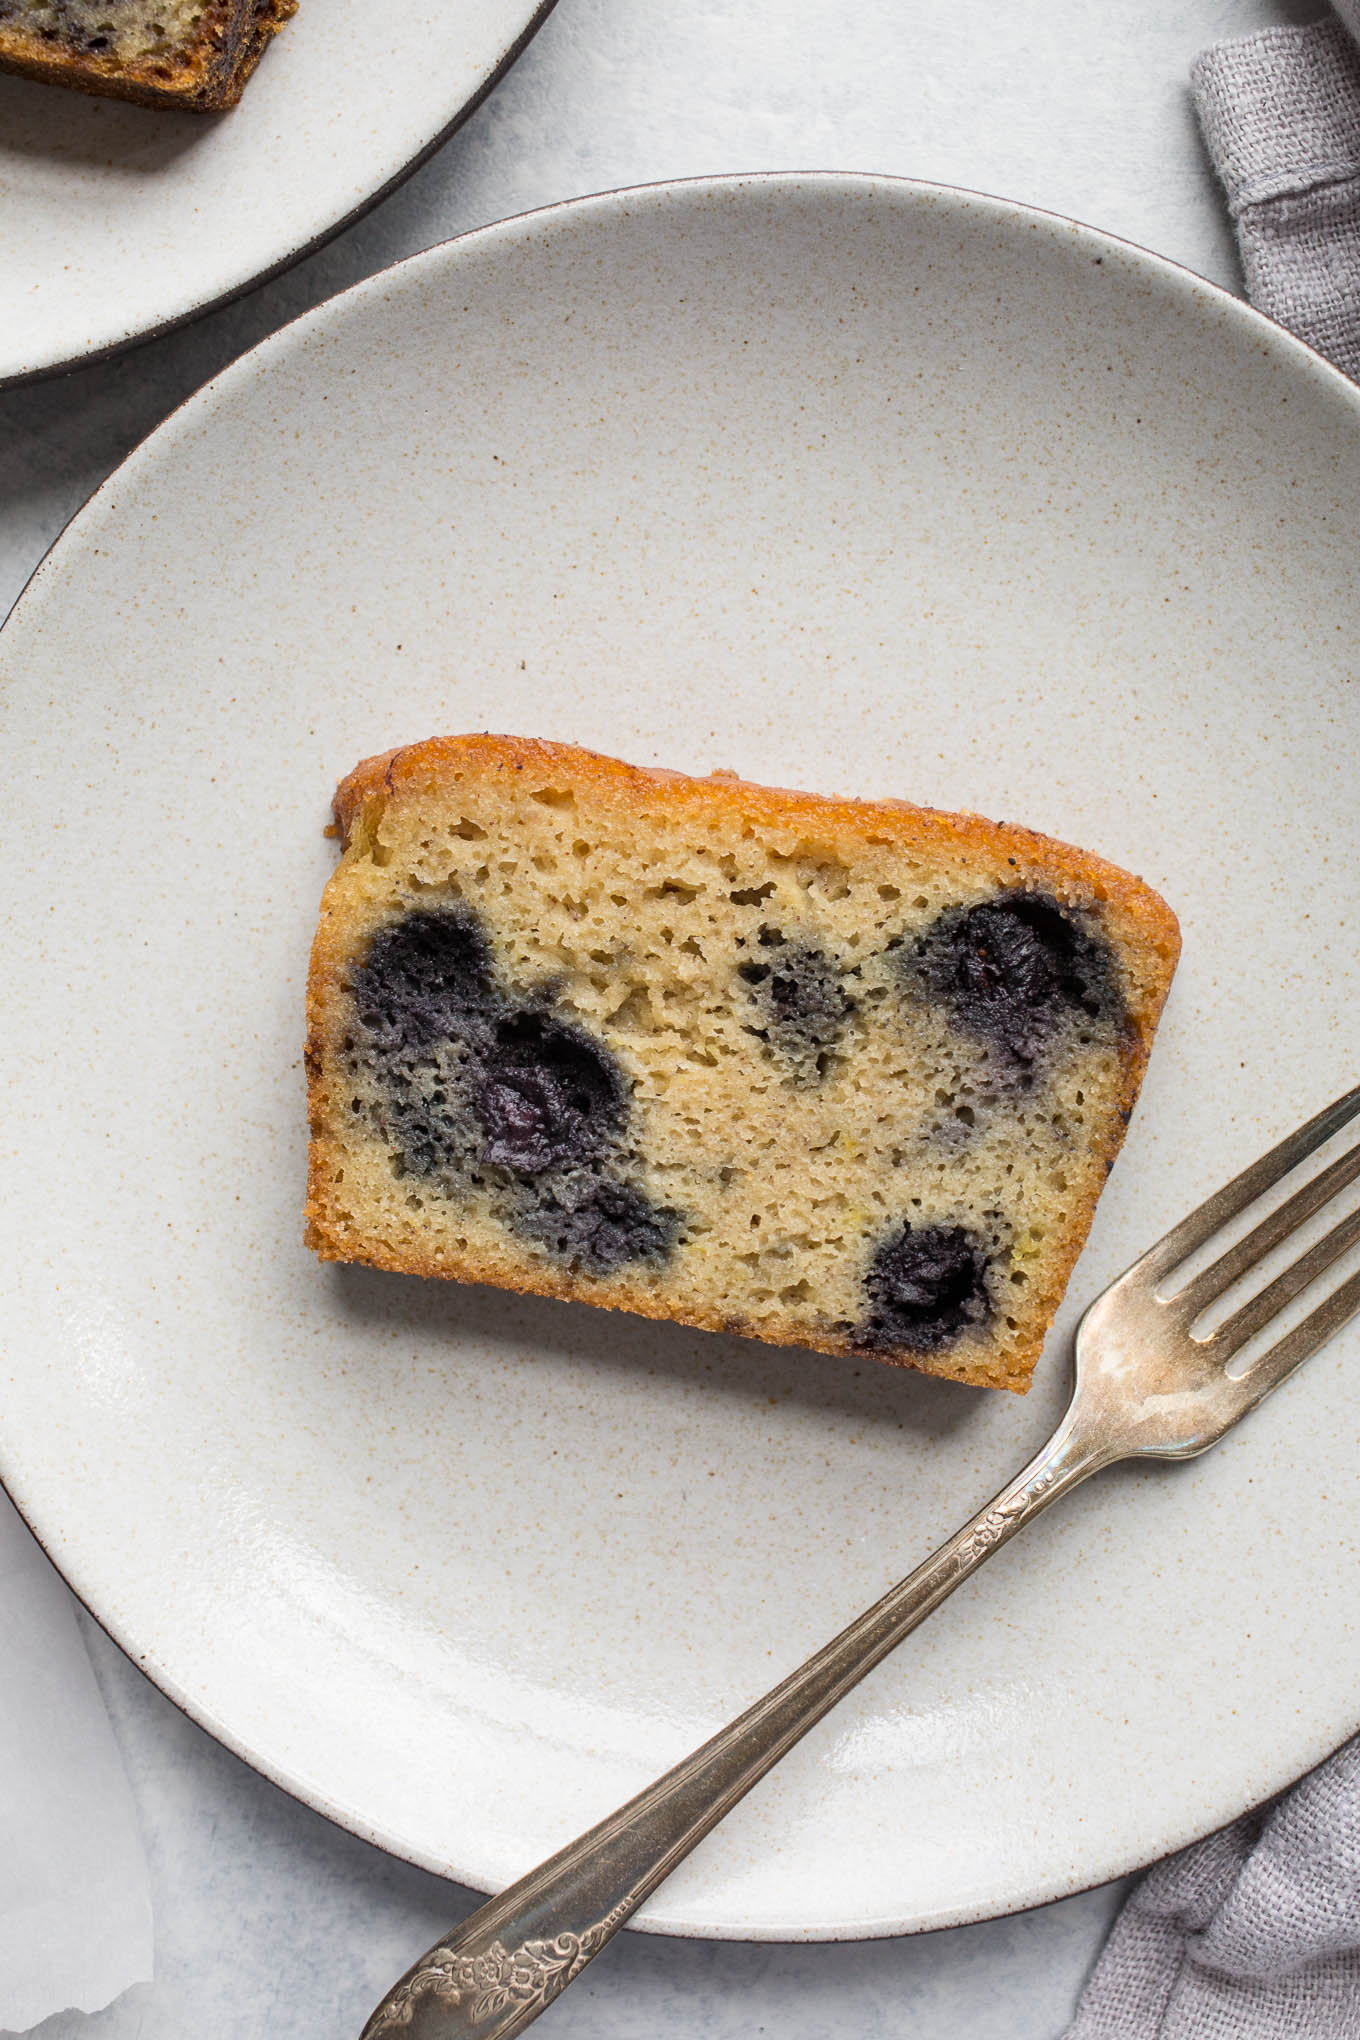 blueberry cake on plate